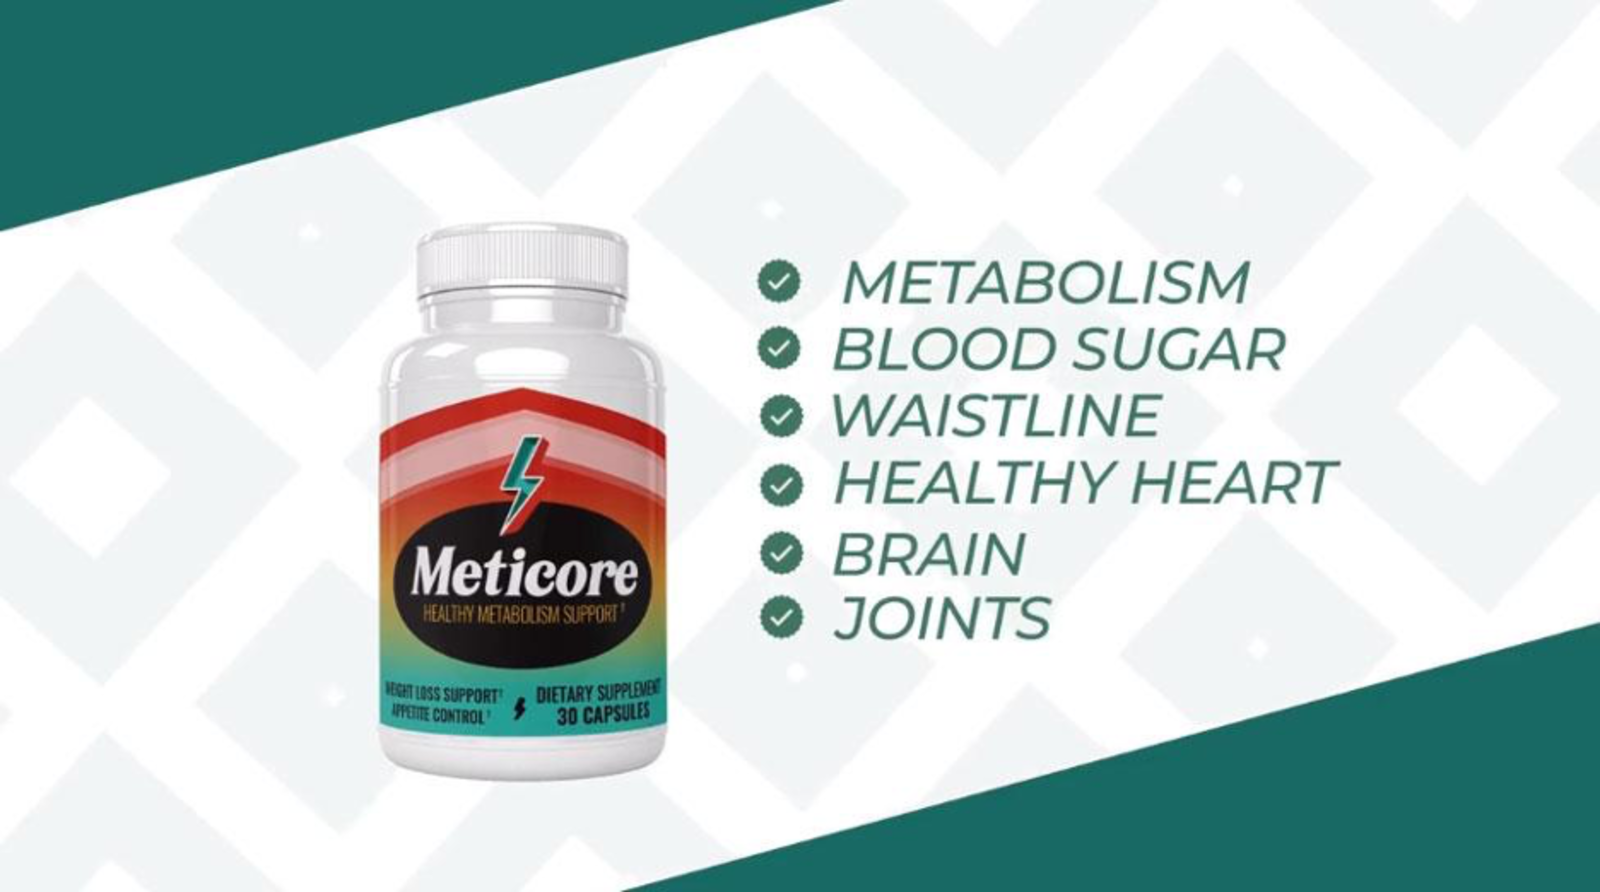 Meticore - Groundbreaking New Report Released on Meticore Weight Loss